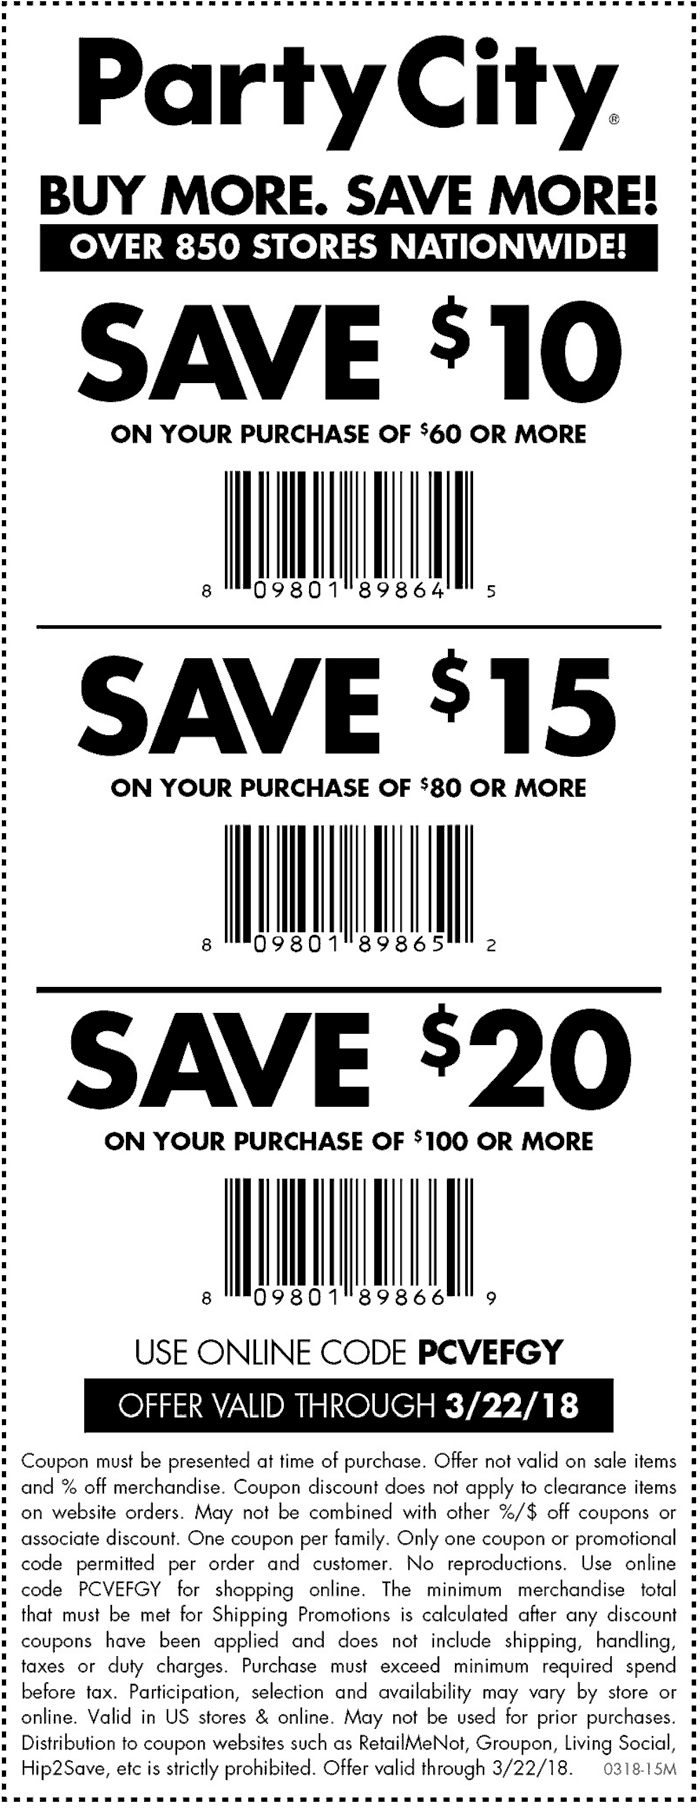 PartyCity.com Promo Coupon $10 off $60 & more at Party City, or online via promo code PCVEFGY